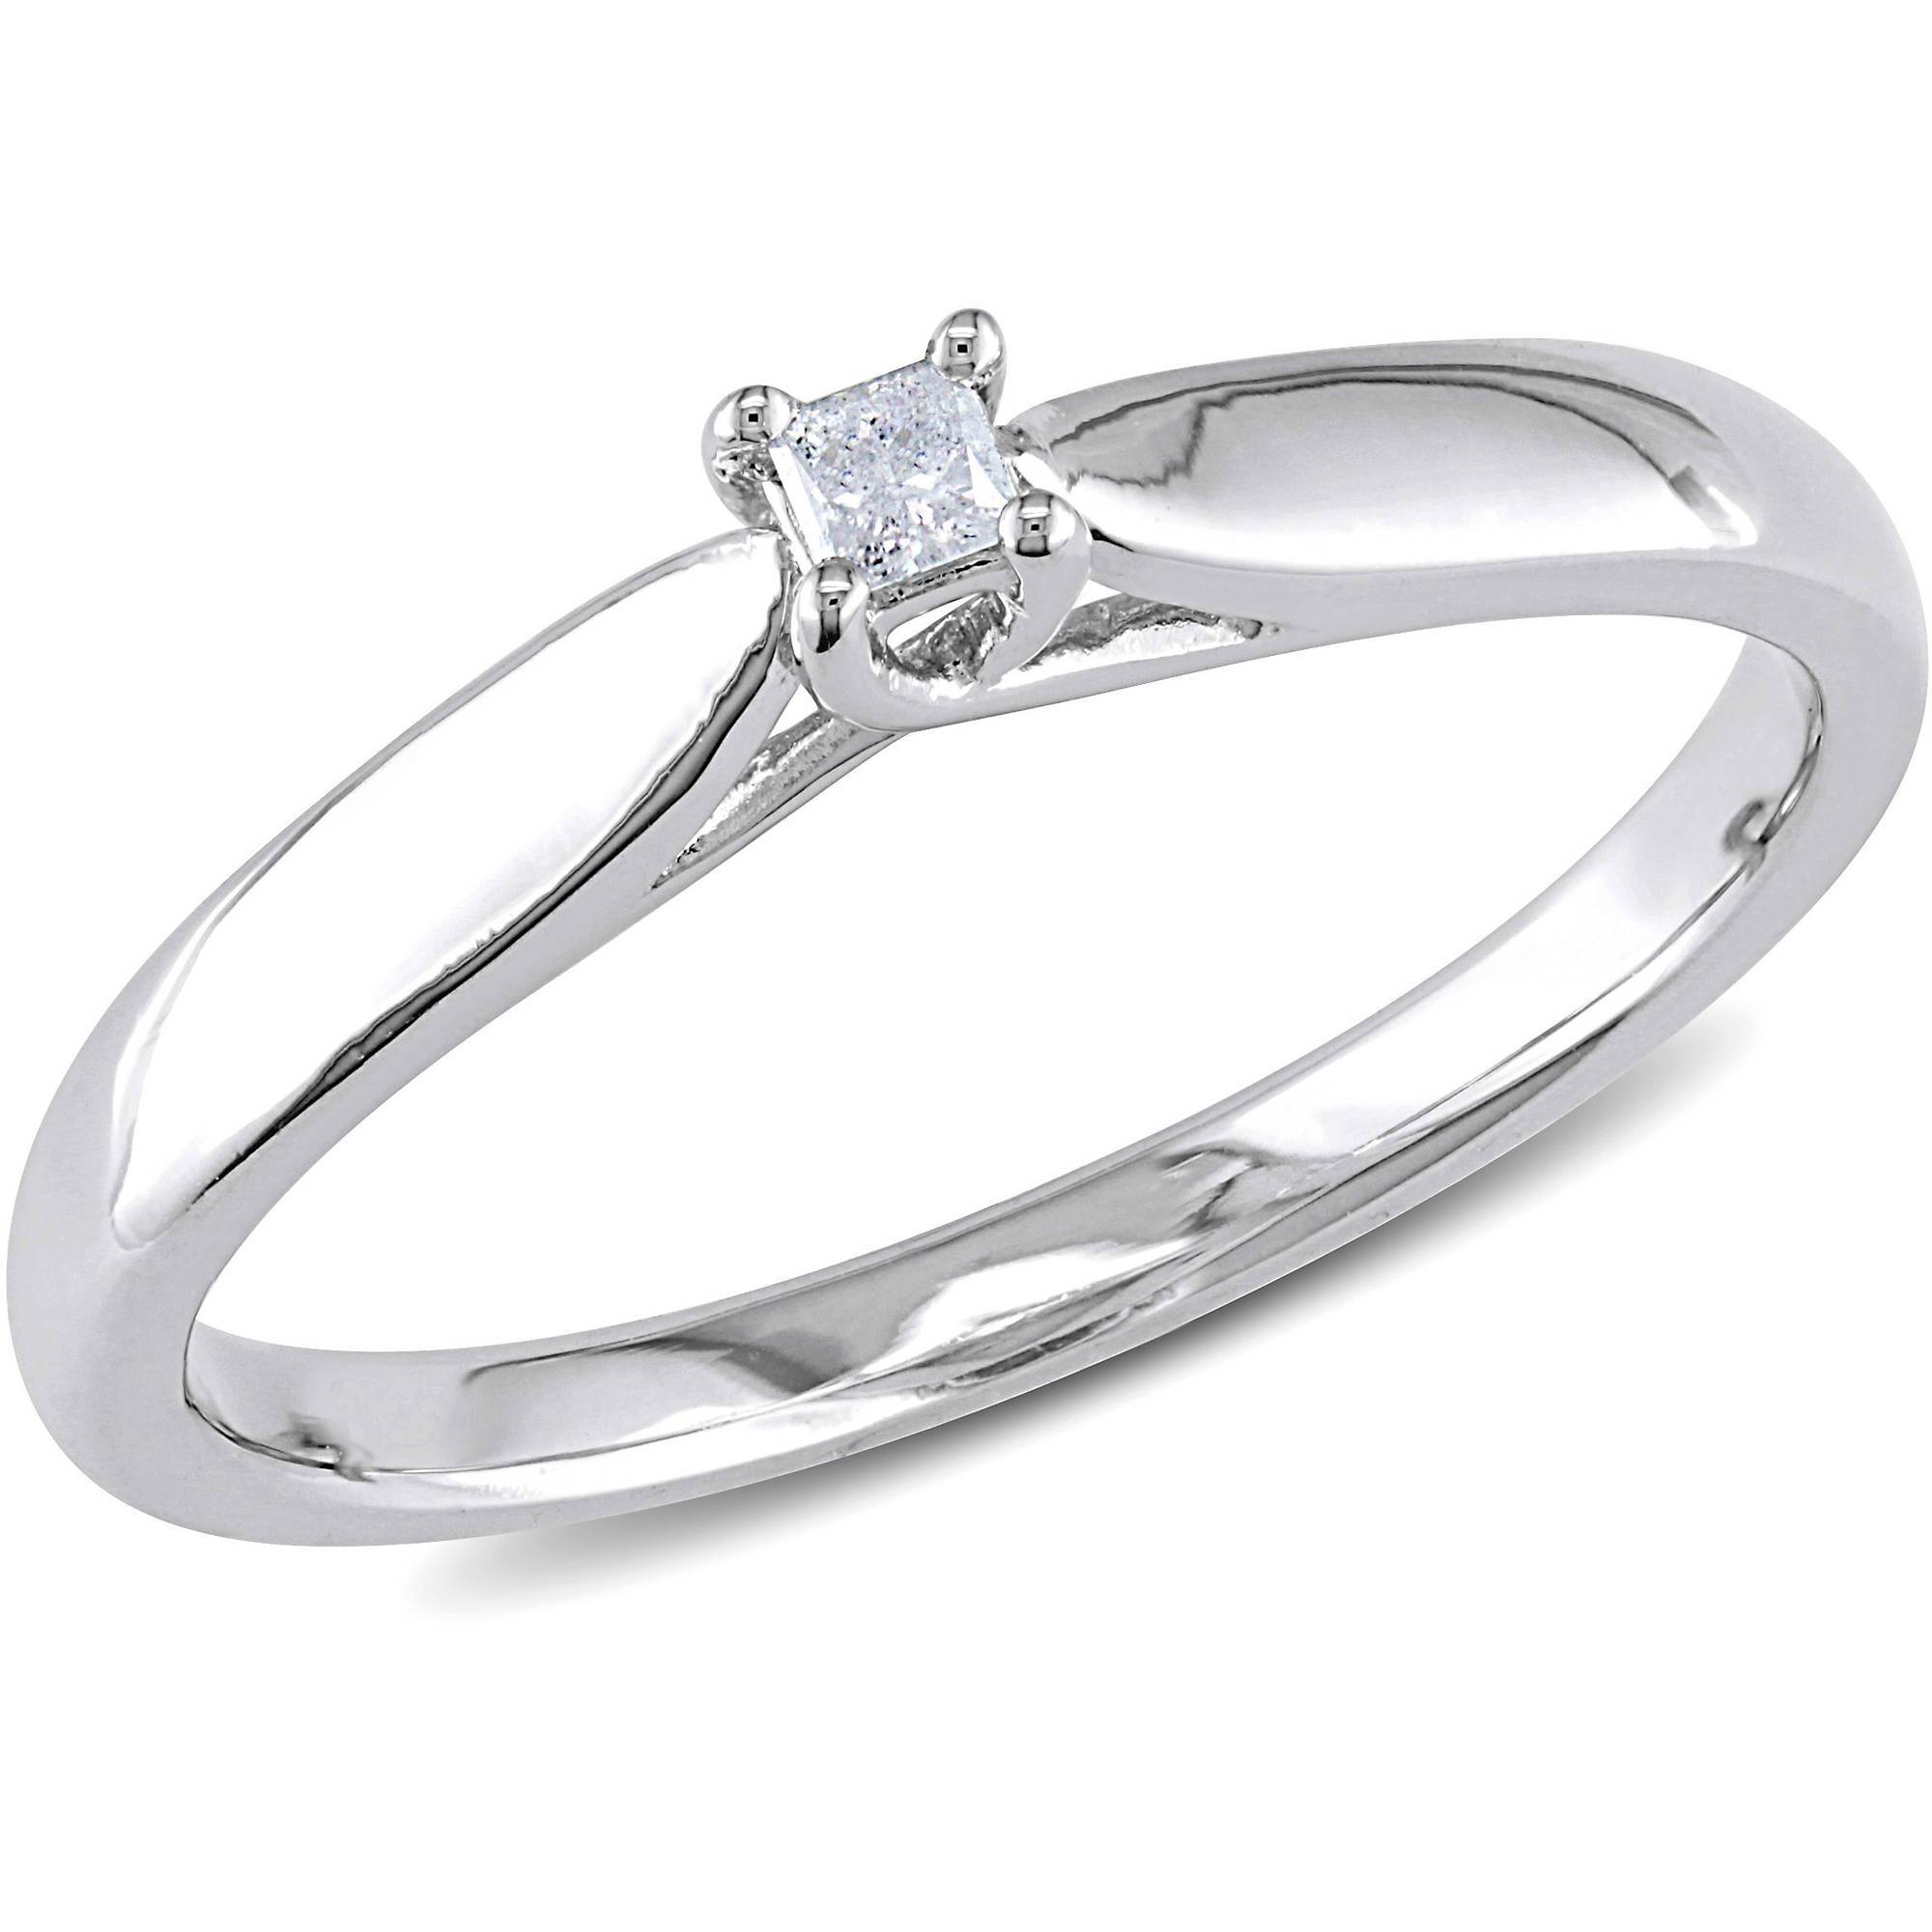 Diamond Promise Rings In Walmart Princess Cut Engagement Rings (View 4 of 15)